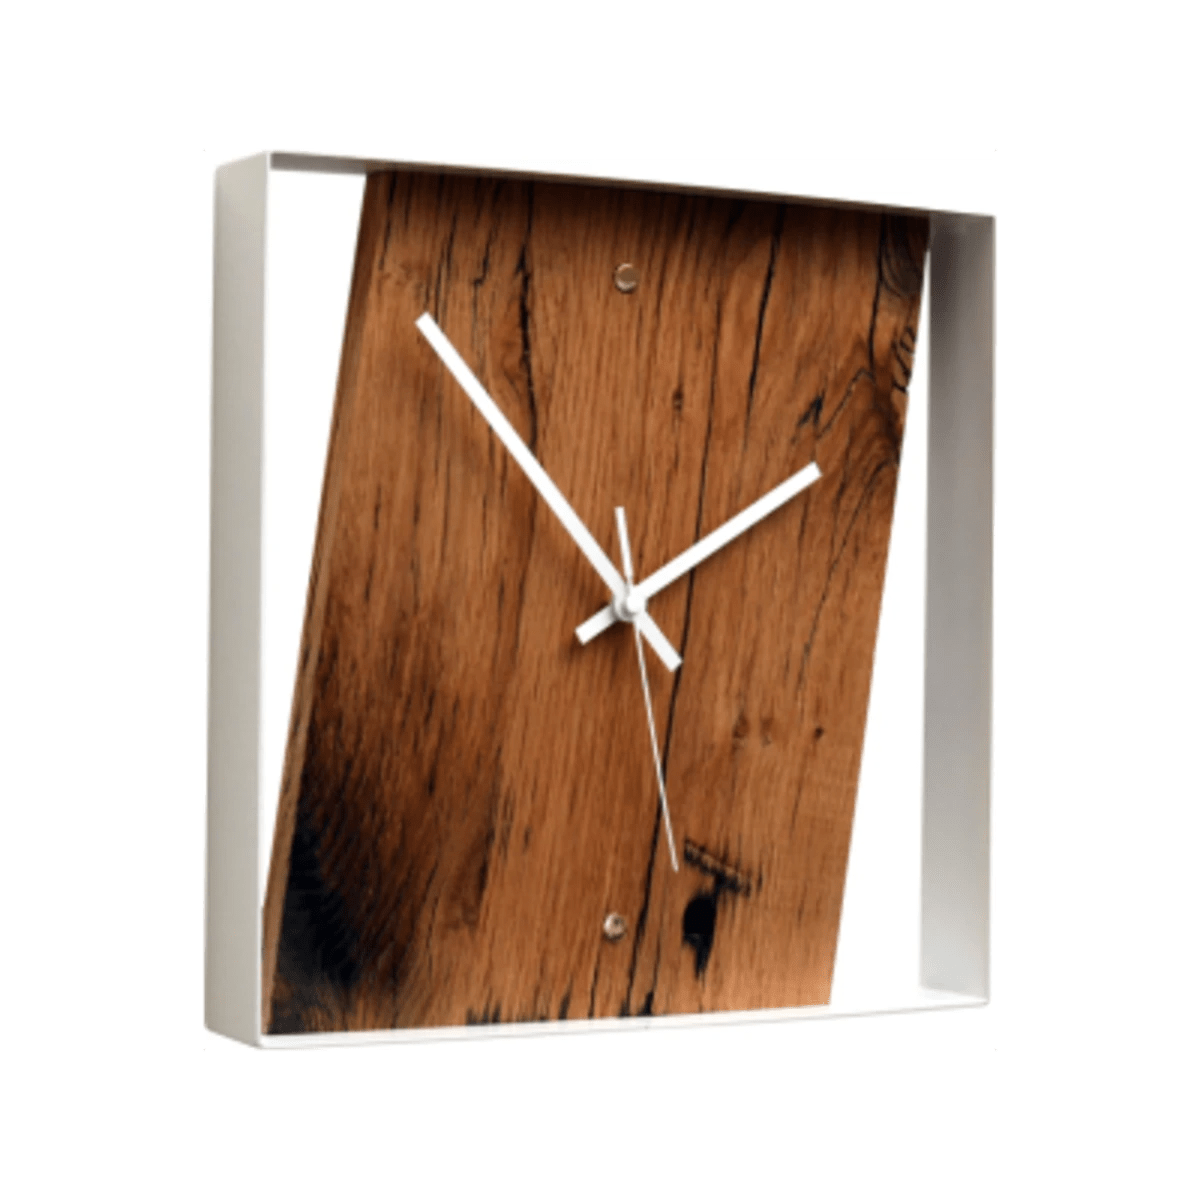 Meubles Hay France Reclaimed French Oak Wall Clock By Jam Furniture Clippings